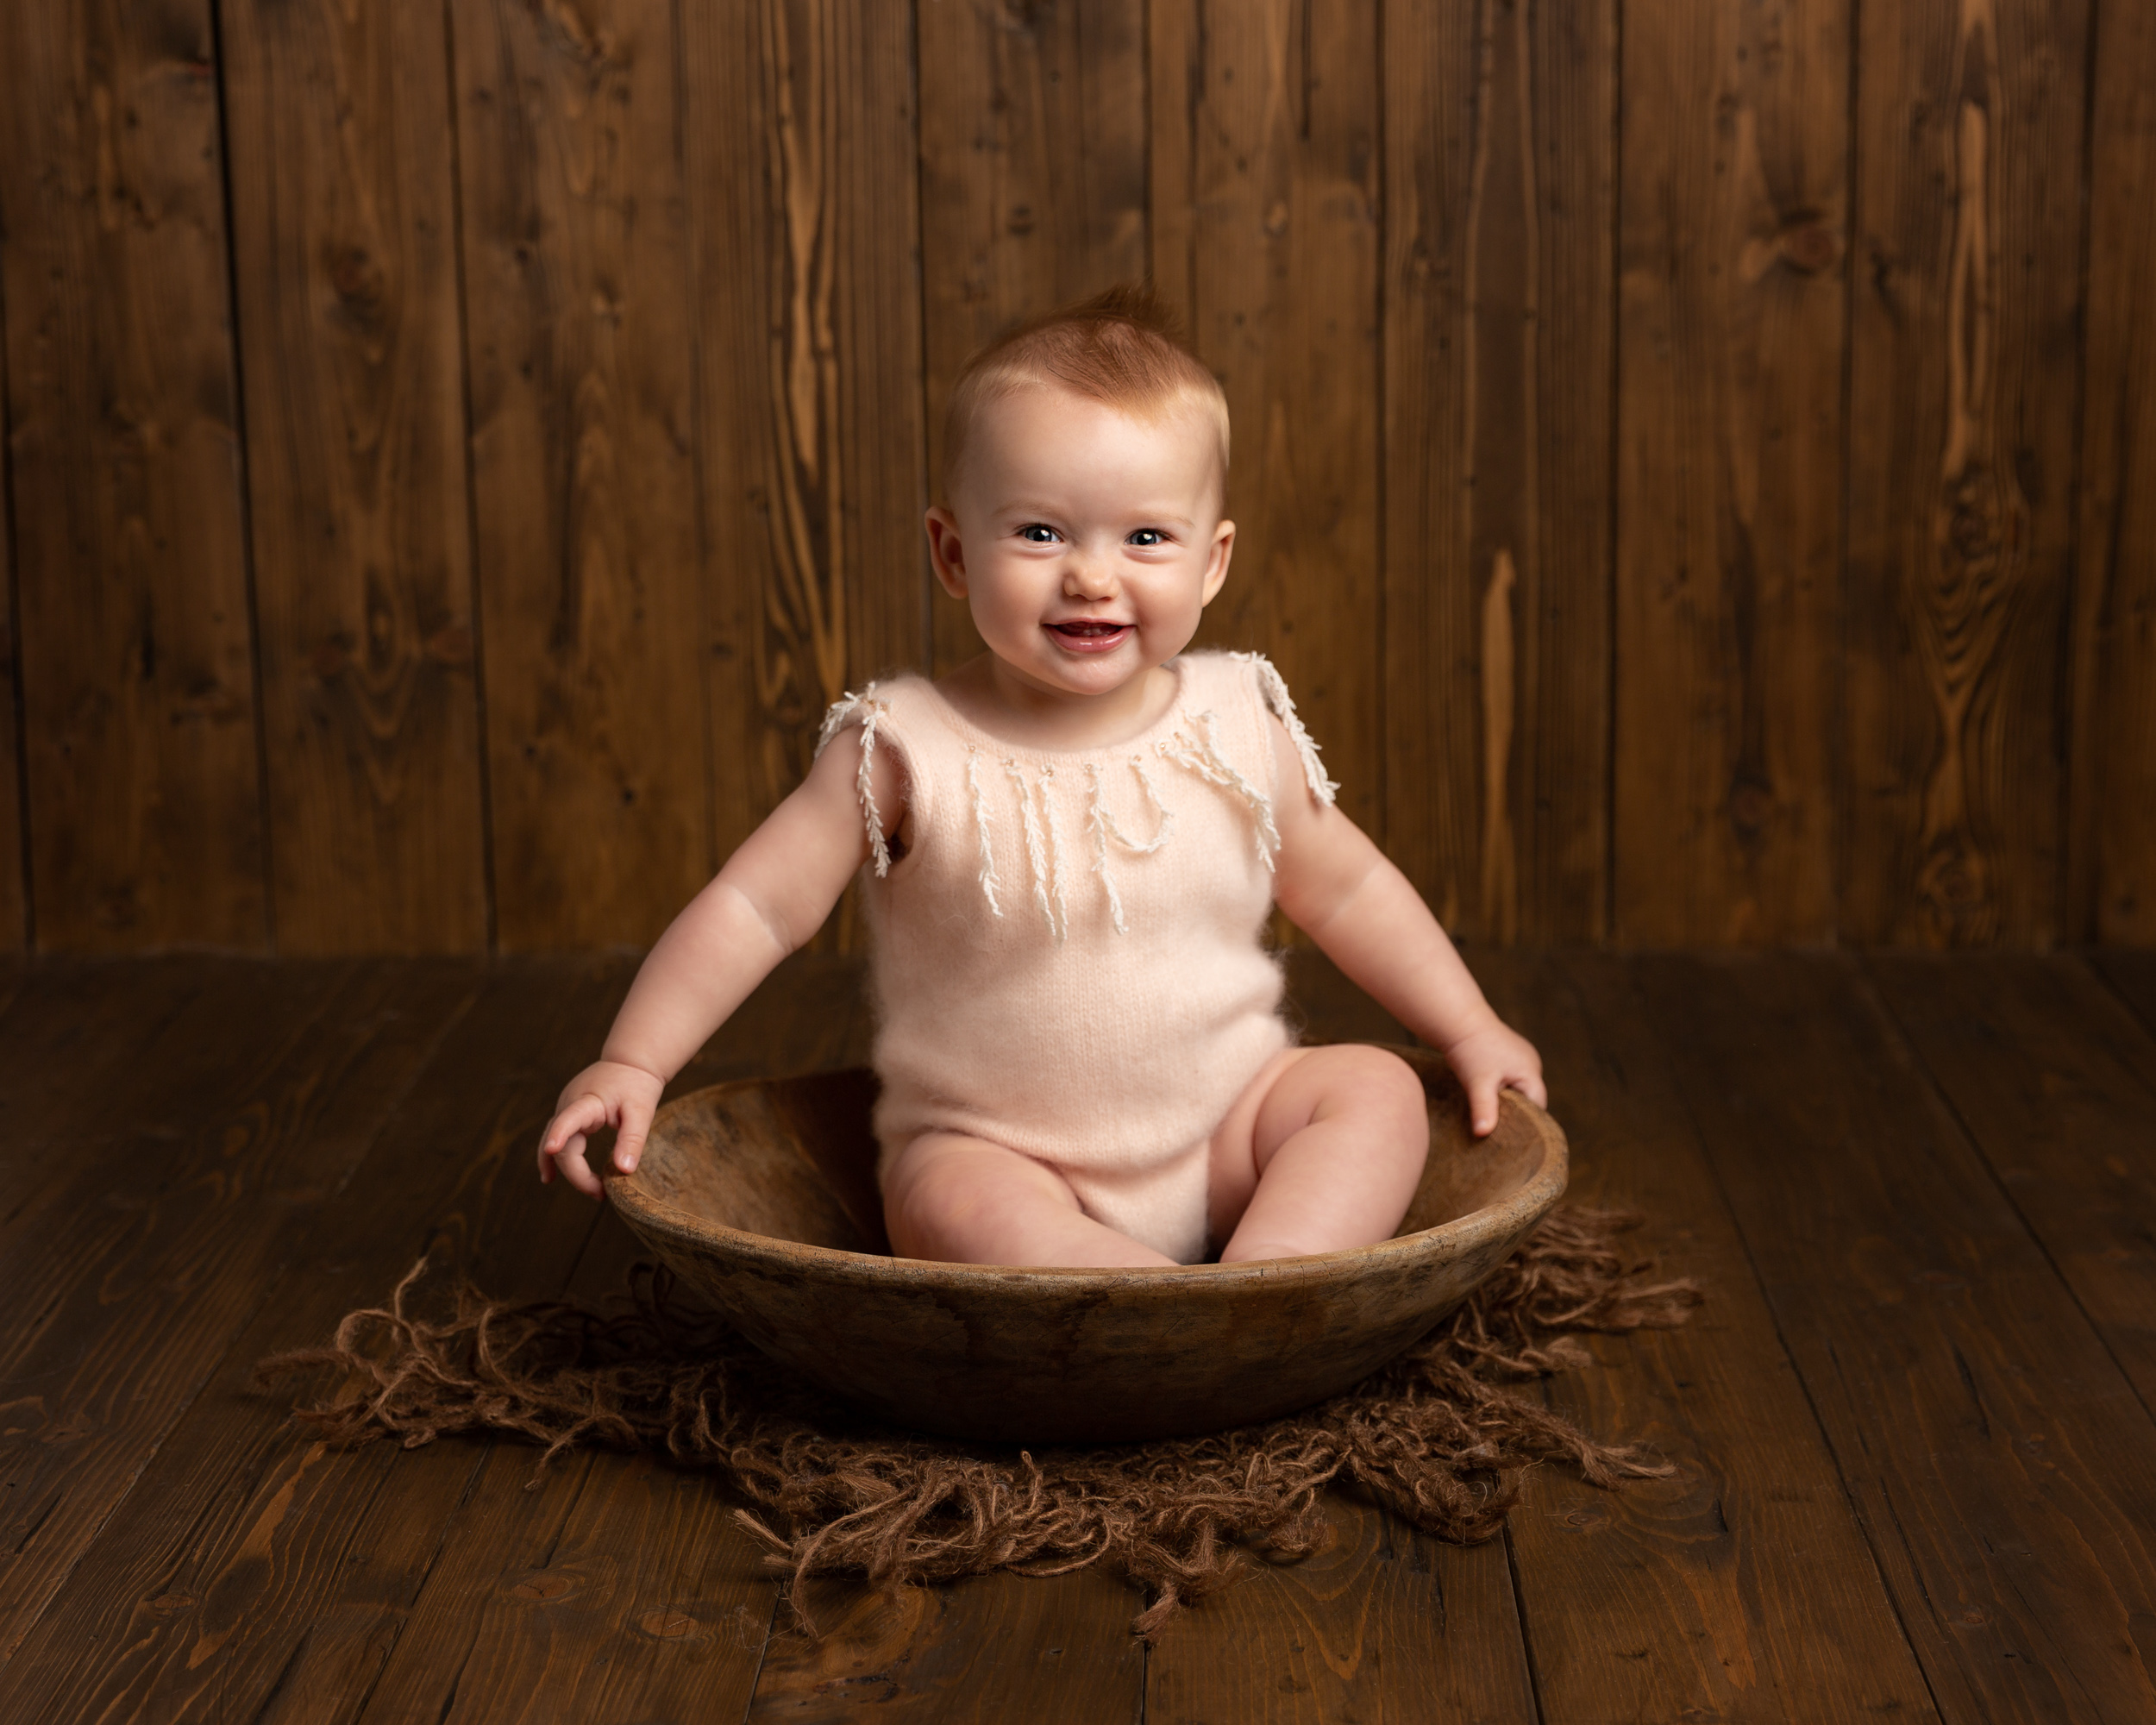 6 month old girl in a bowl on a wooden backdrop taken during a milestone portrait session in Sandbach, Cheshire